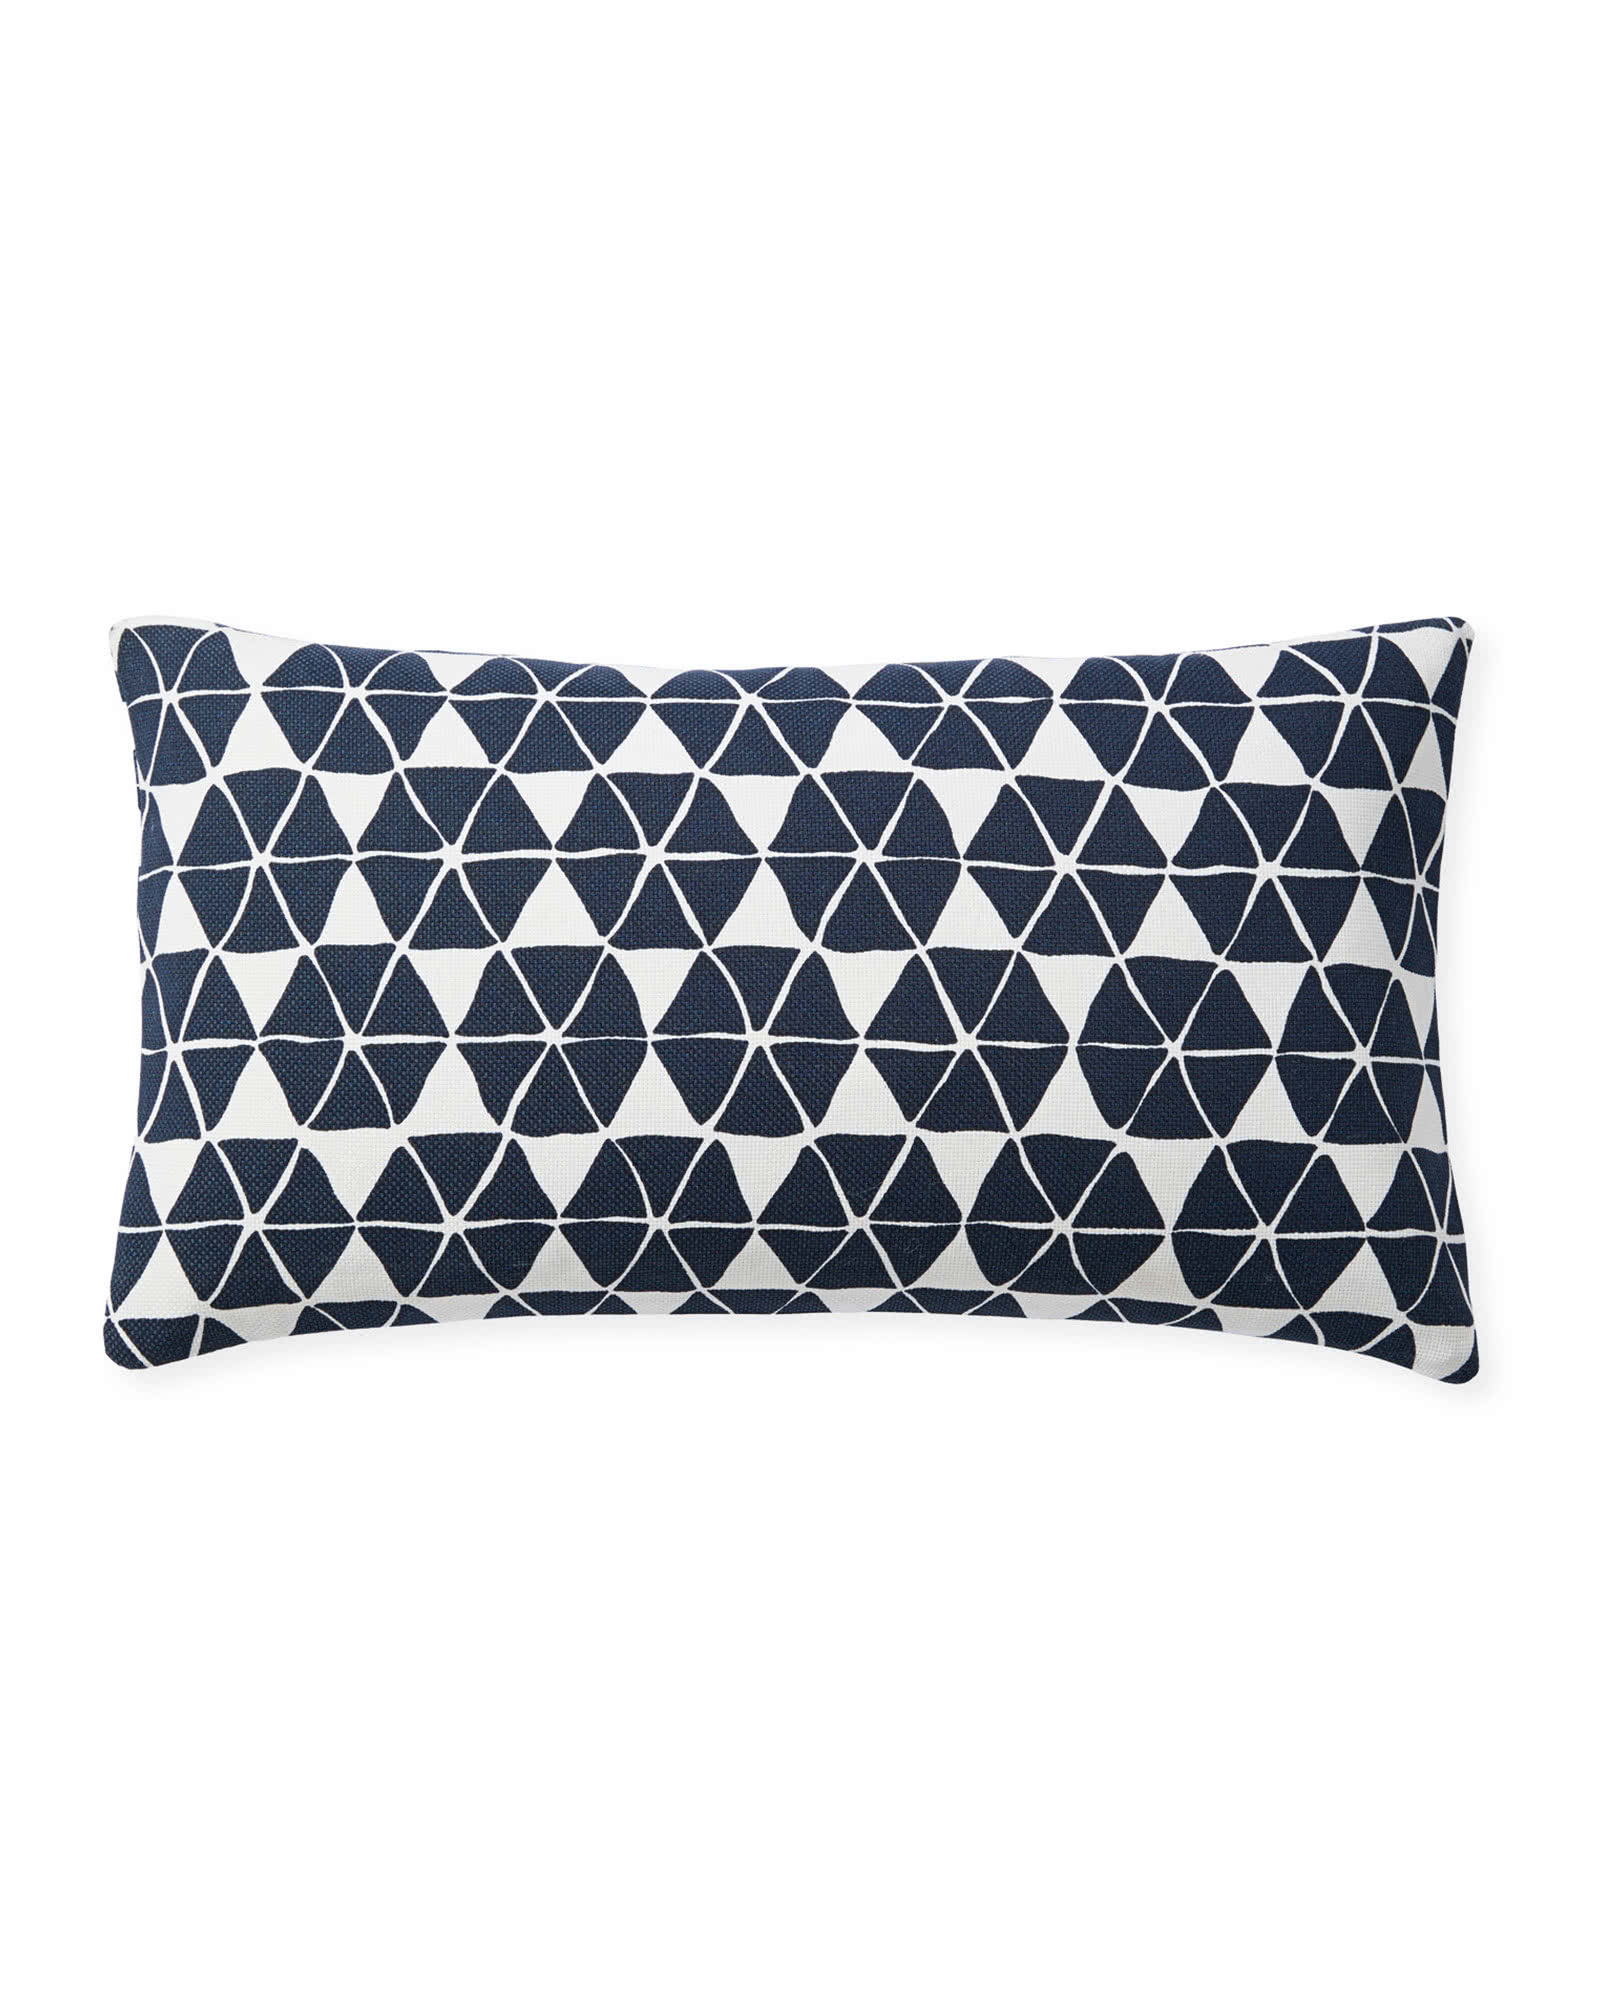 Citrus Outdoor Pillow Cover, Midnight